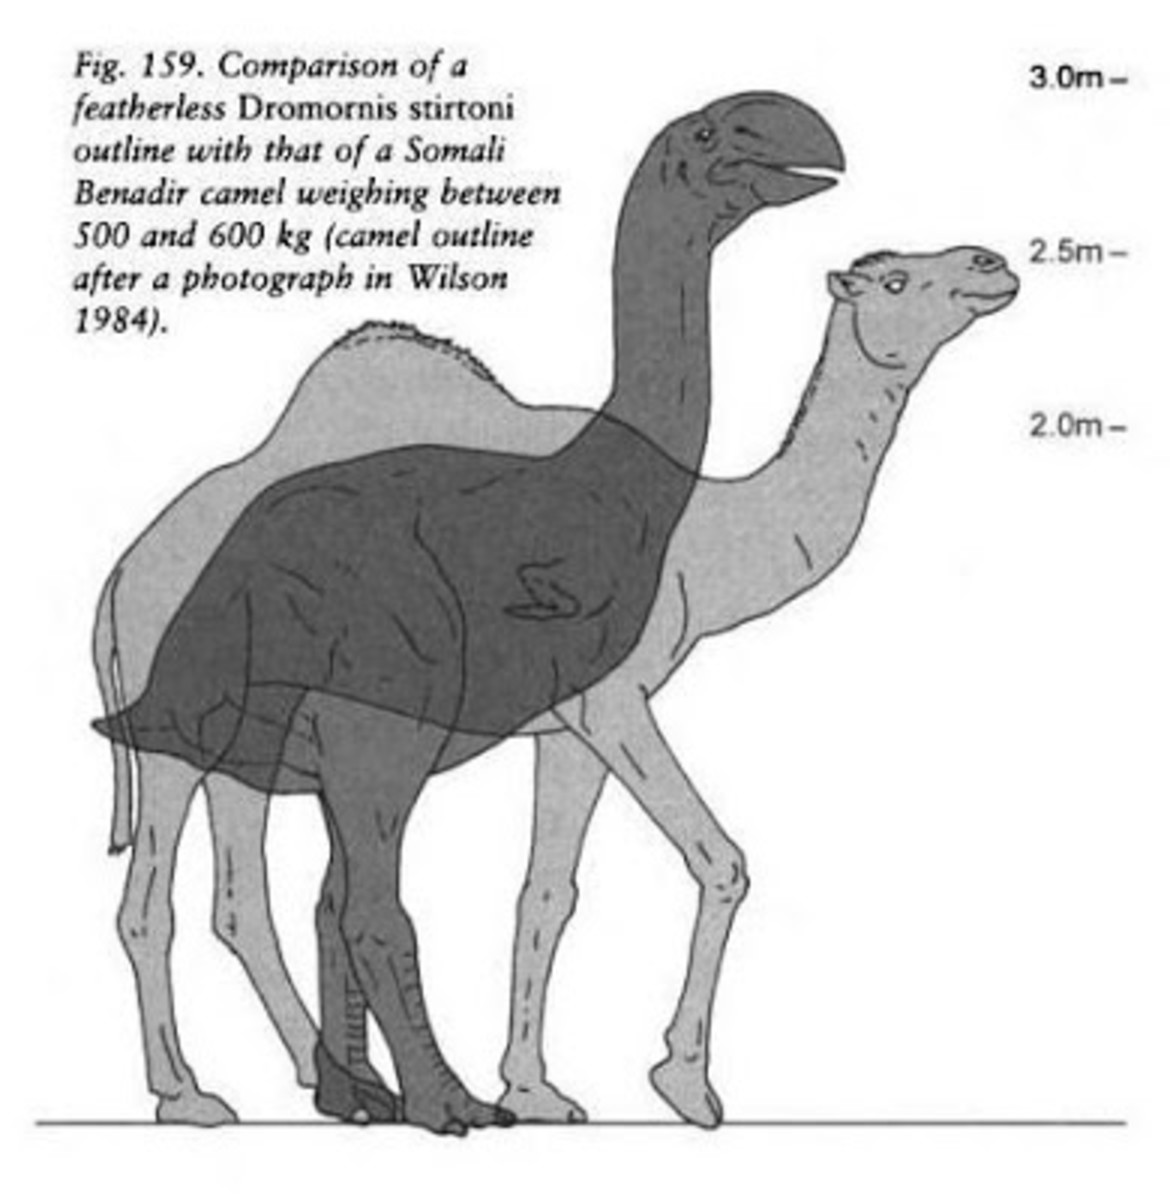 Demon Duck compared to a Camel